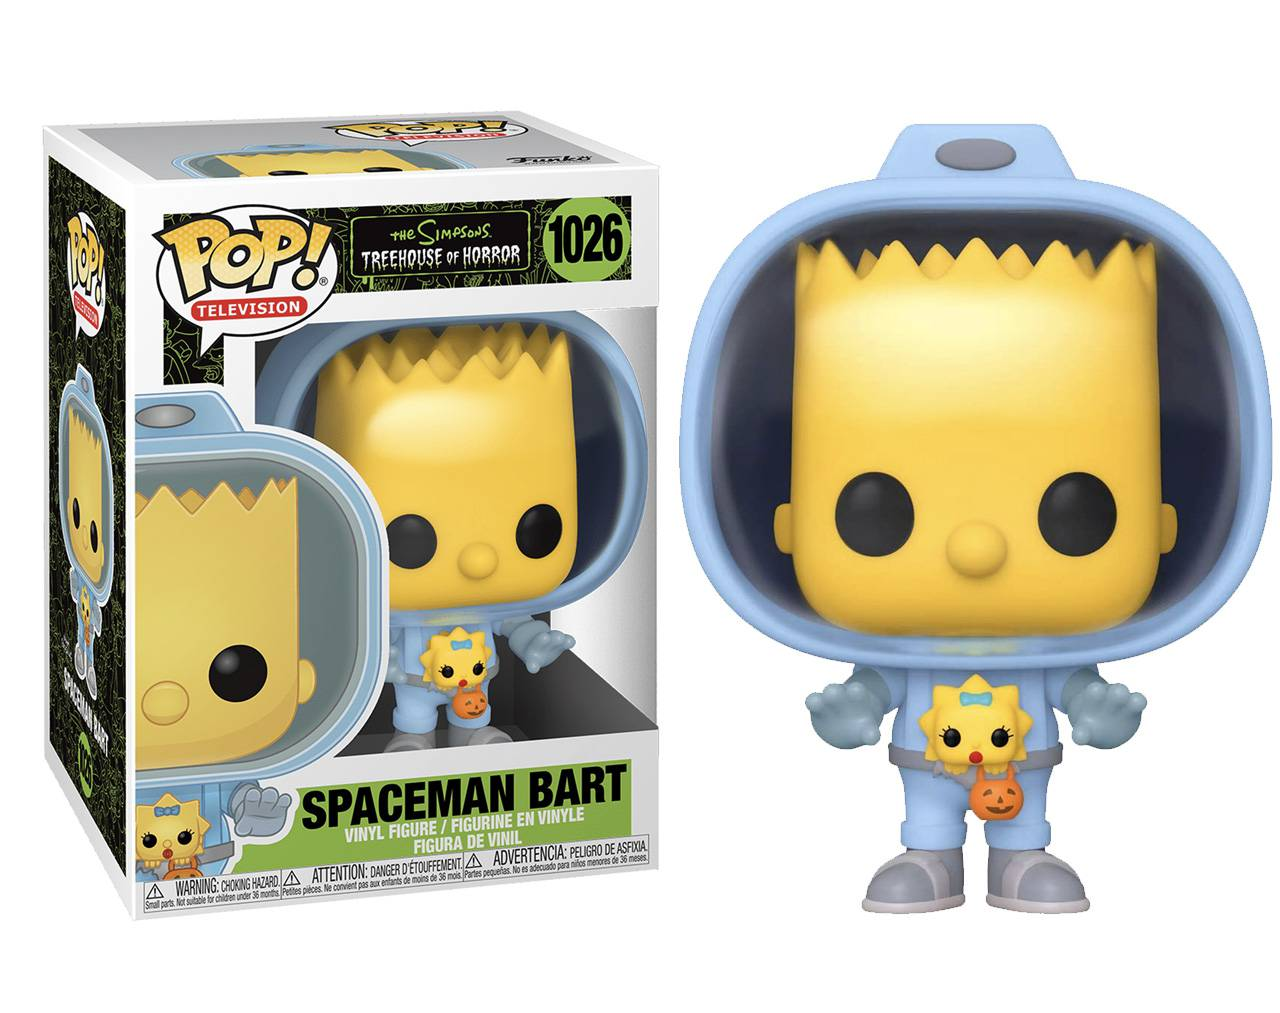 Spaceman Bart (with Maggie) Pop! Vinyl